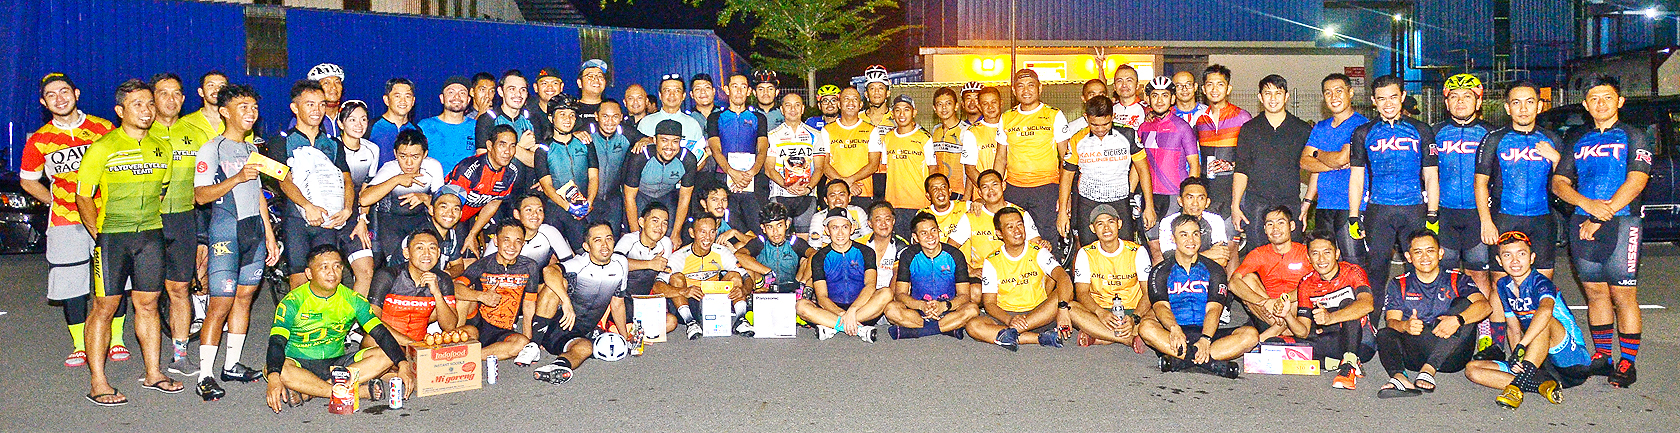 Cycling community holds training session to stay fit during Ramadhan (2019)